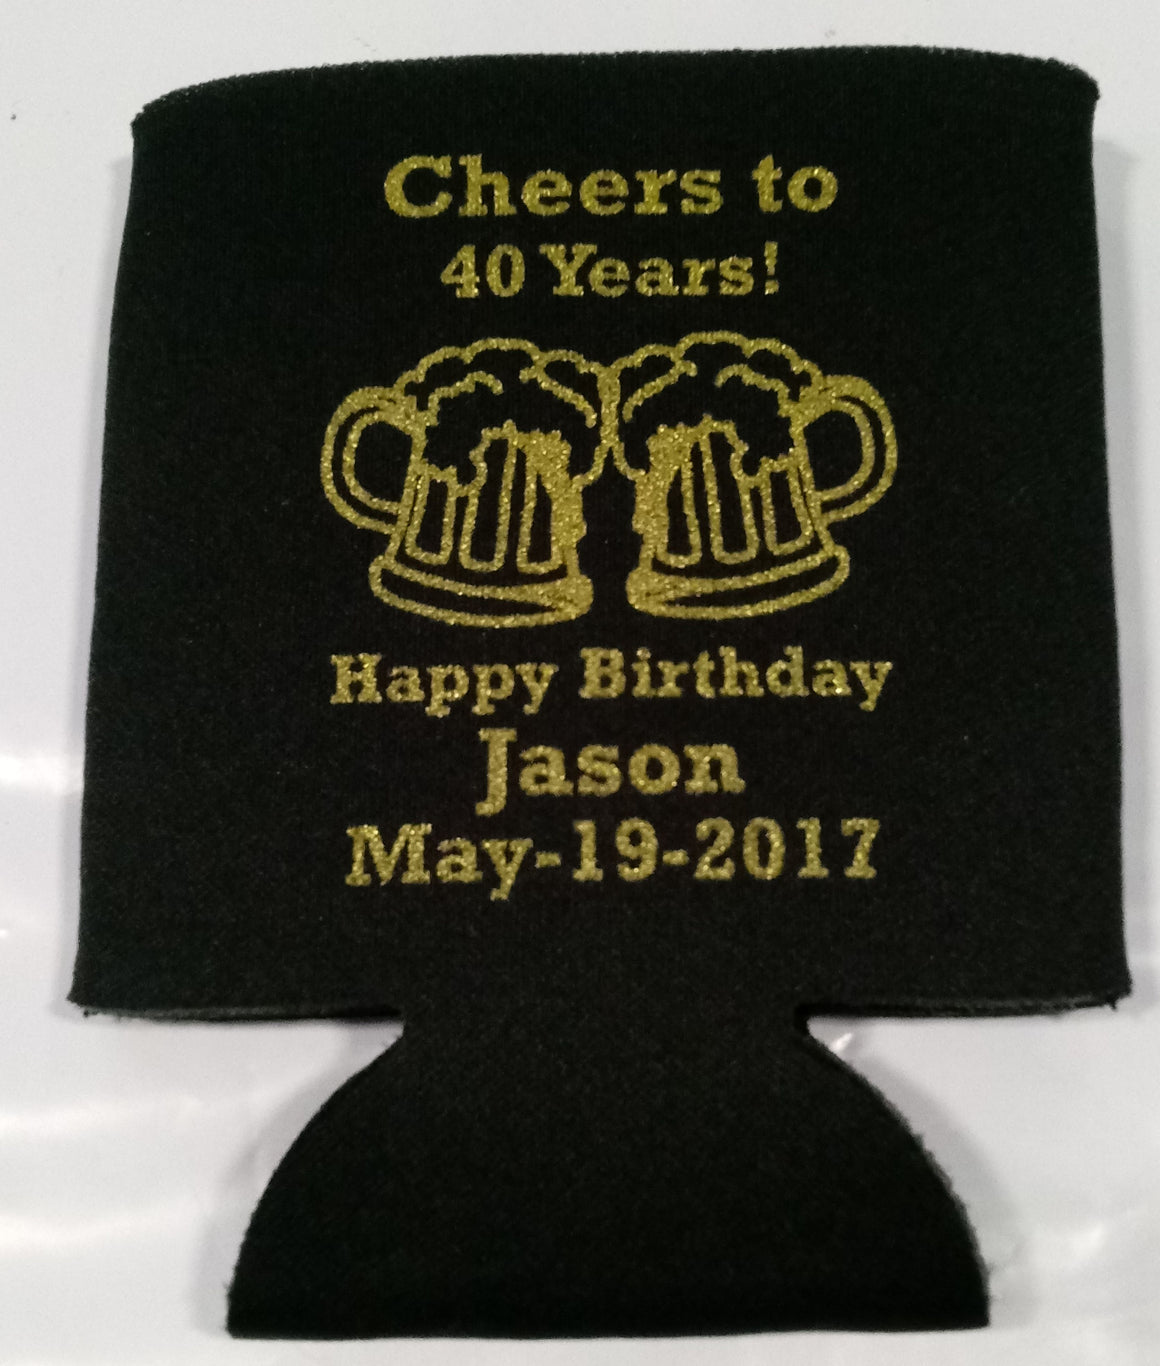 cheers and beers 40th Birthday koozies favors can coolers